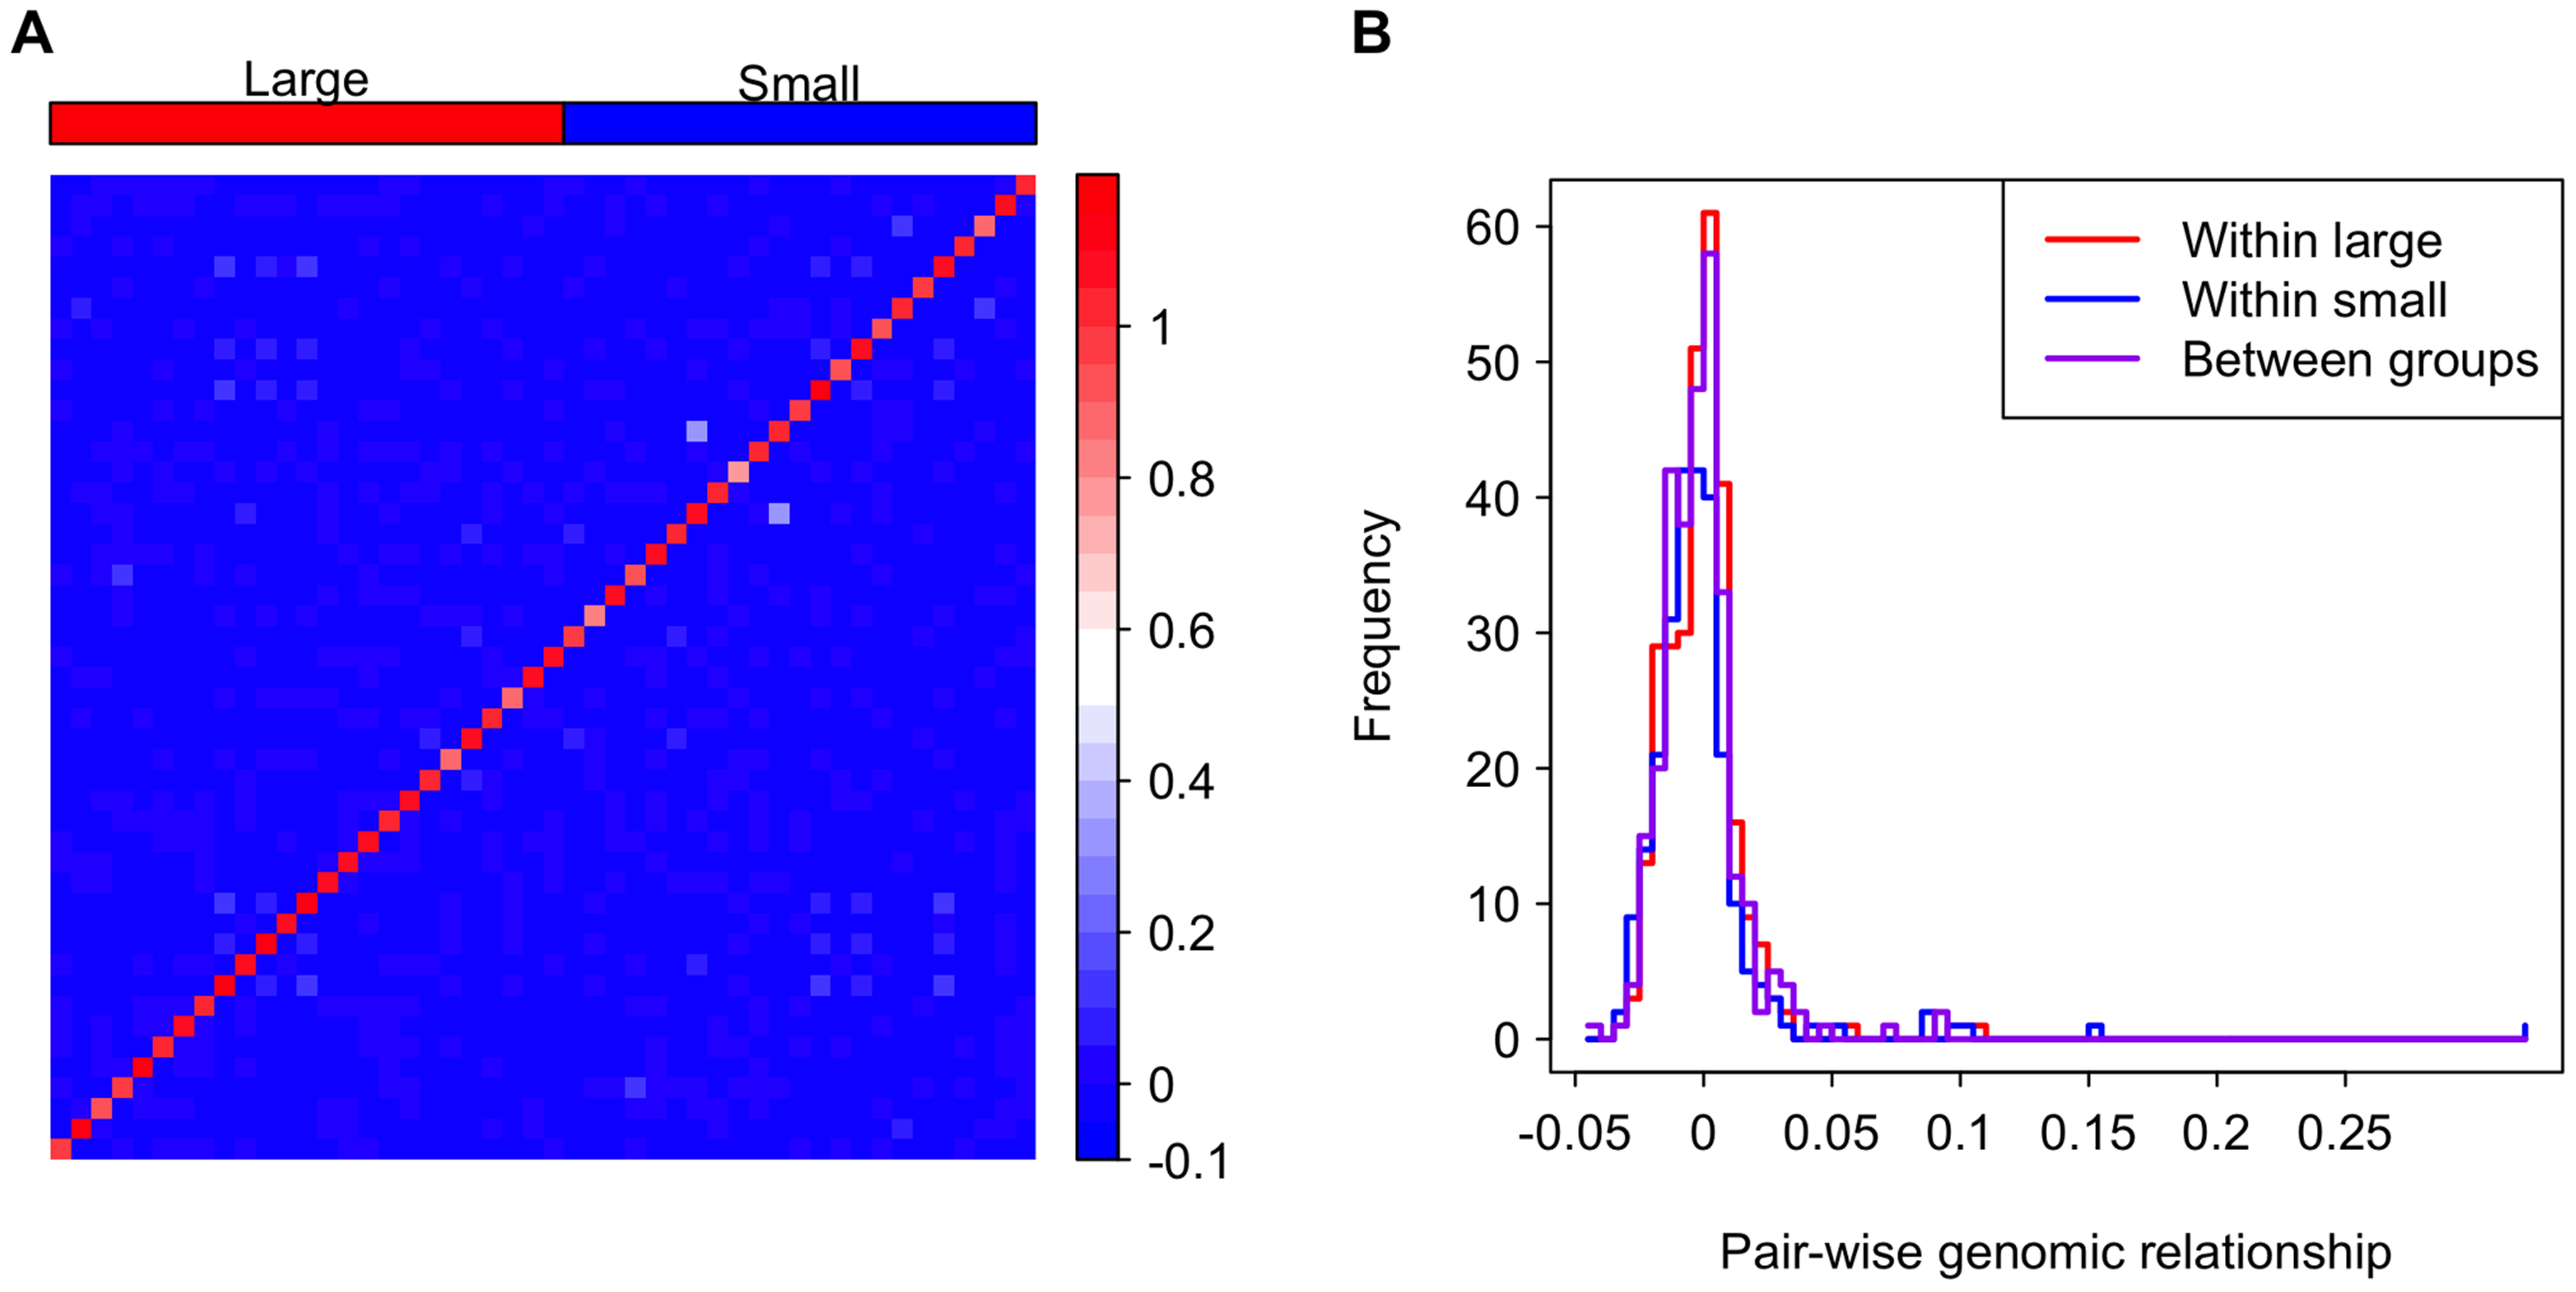 Genomic relationship among and between the large and small genome groups.